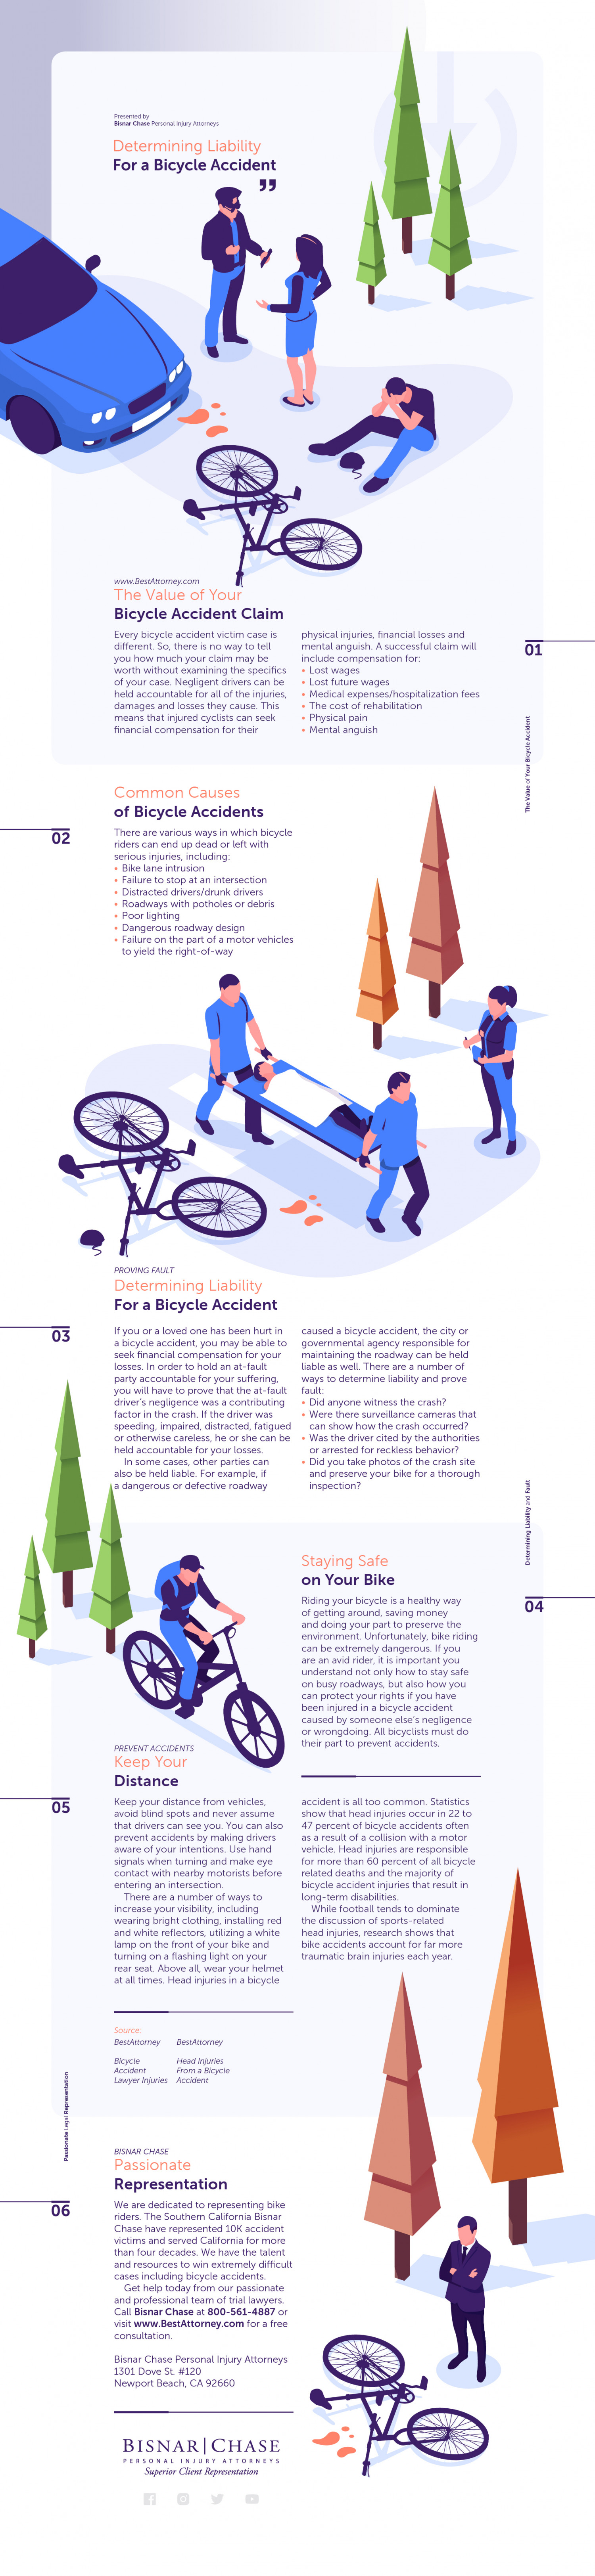 Bicycle accidents - determine liability. Infographic